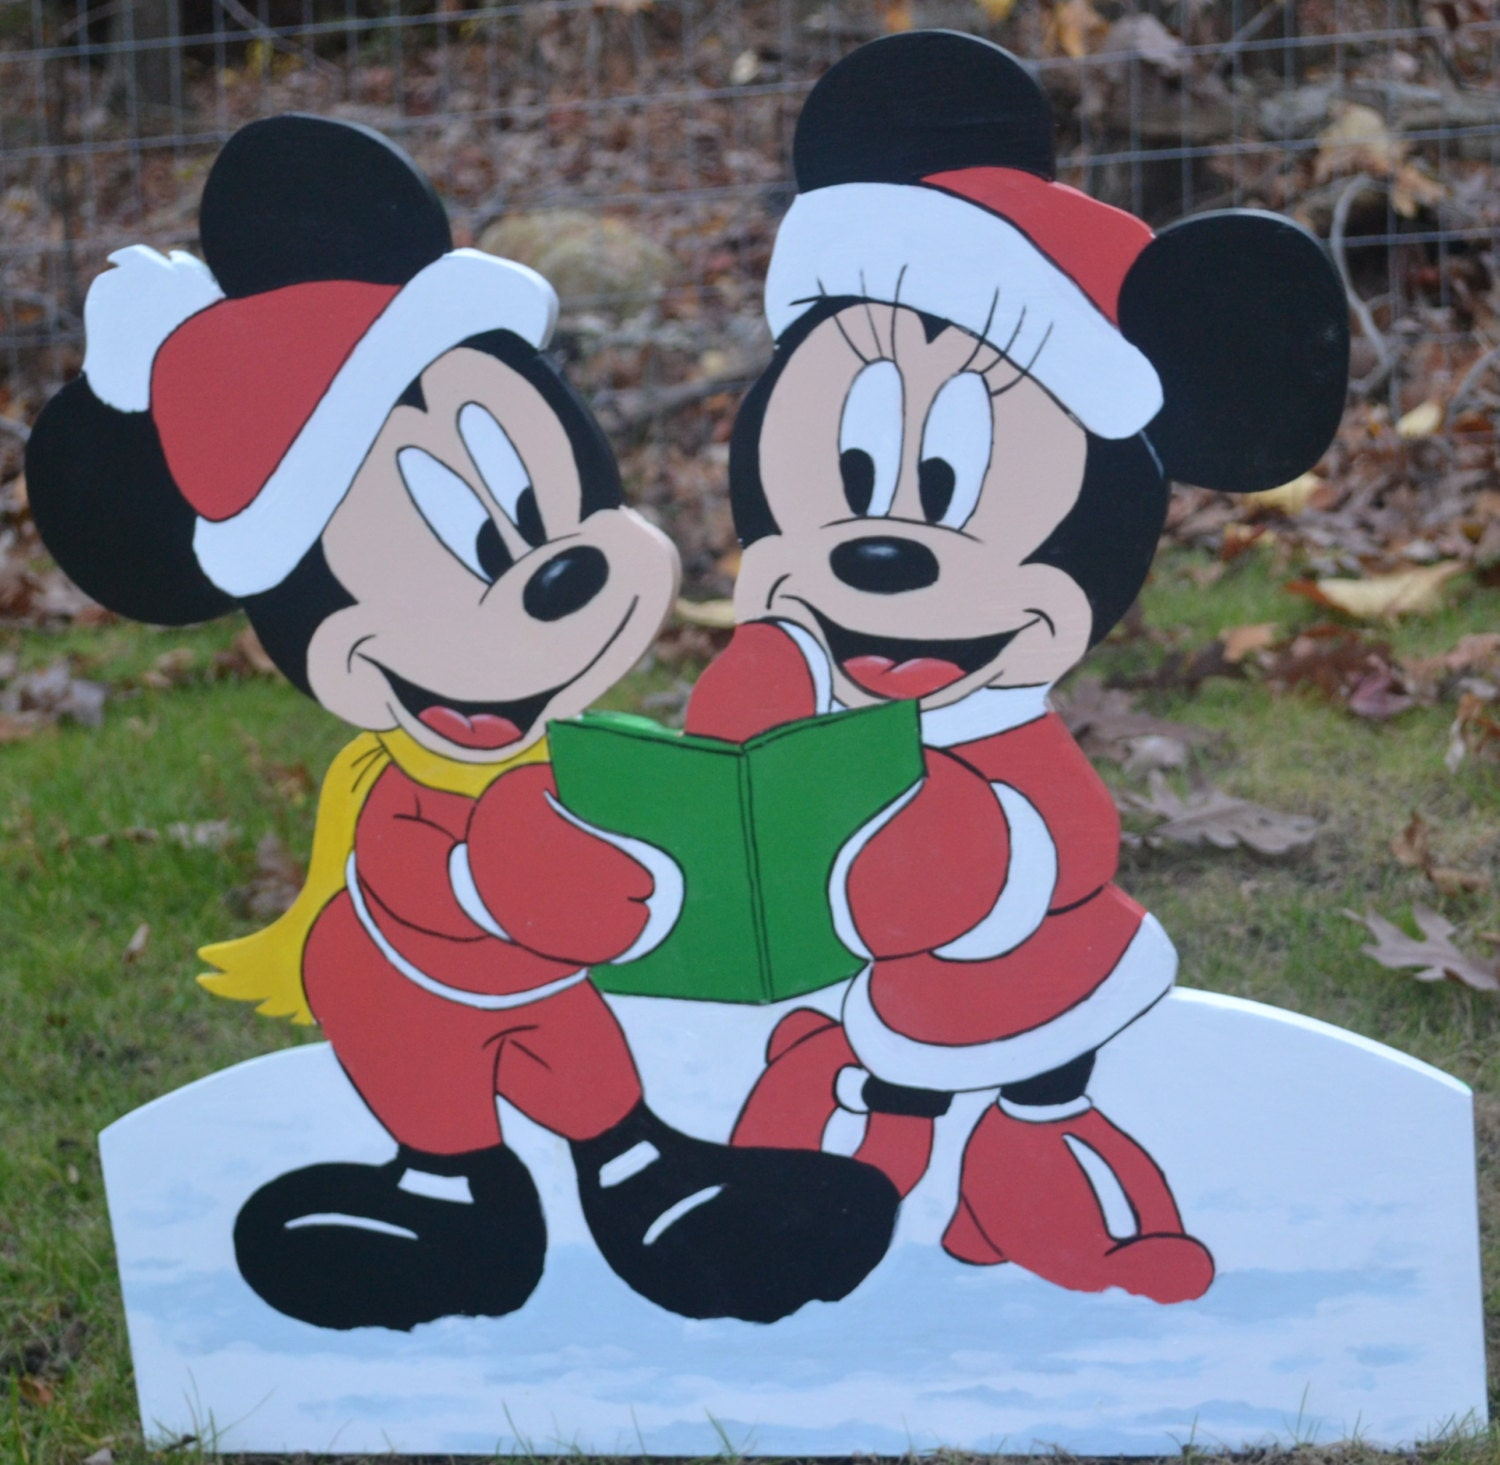 Mickey Mouse and Minnie Mouse singing Christmas Carols lawn